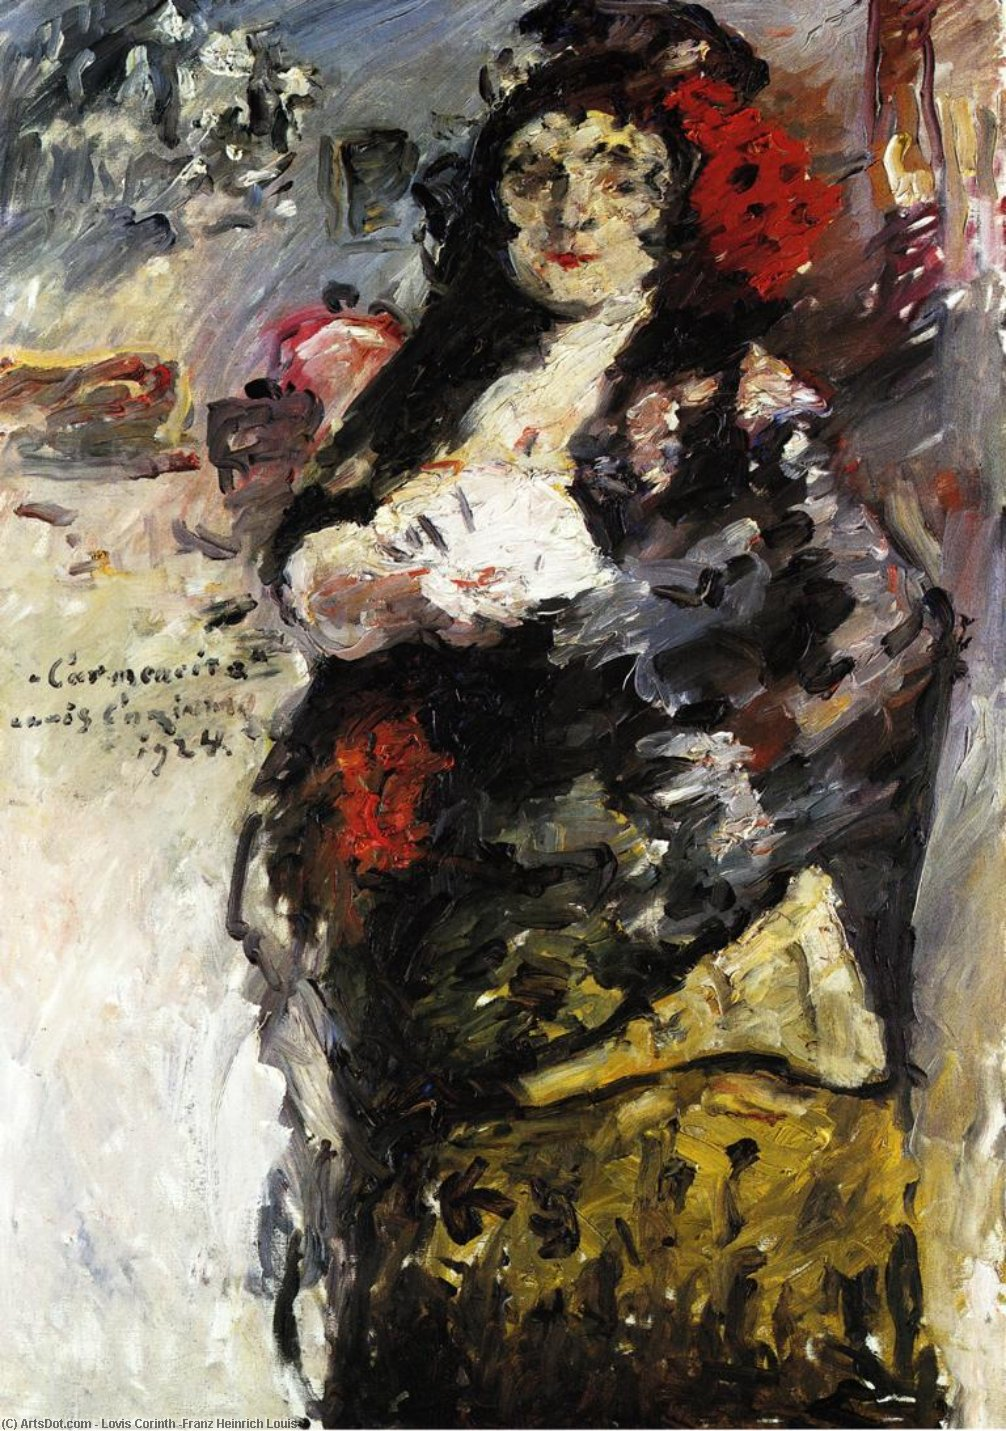 Carmencita, Oil On Canvas by Lovis Corinth (Franz Heinrich Louis) (1858-1925, Netherlands)